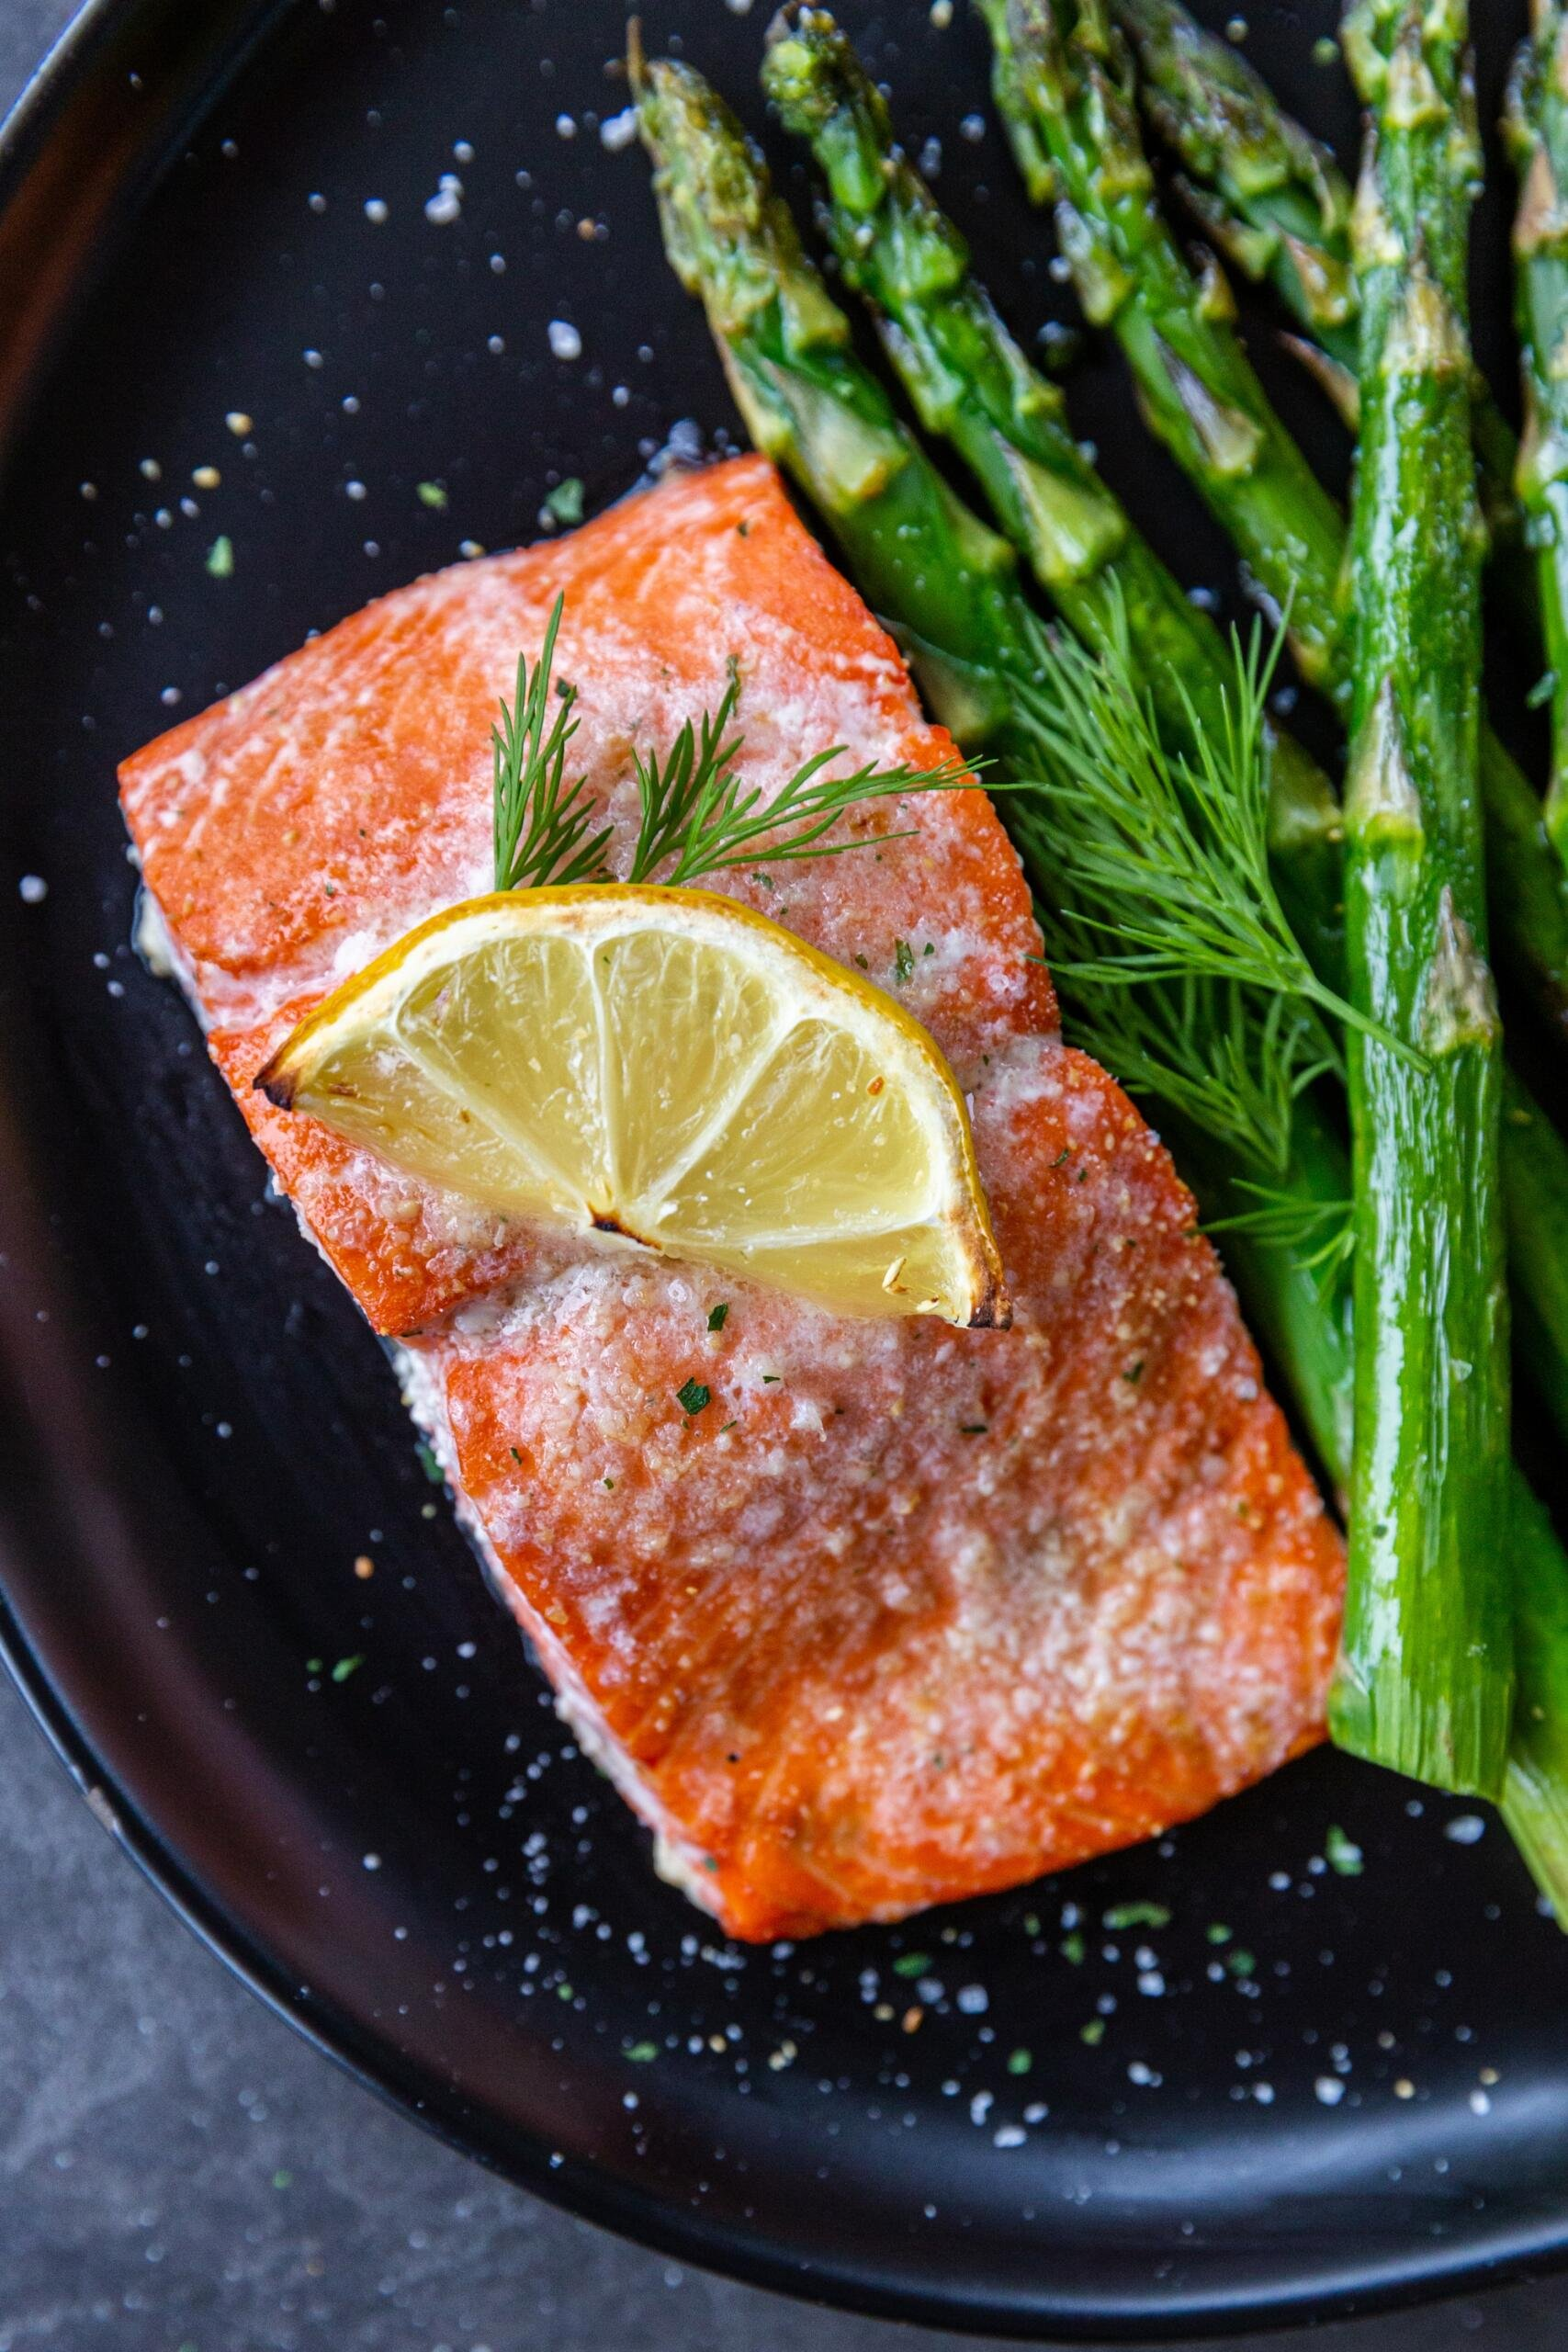 Baked salmon on a plate with asparagus